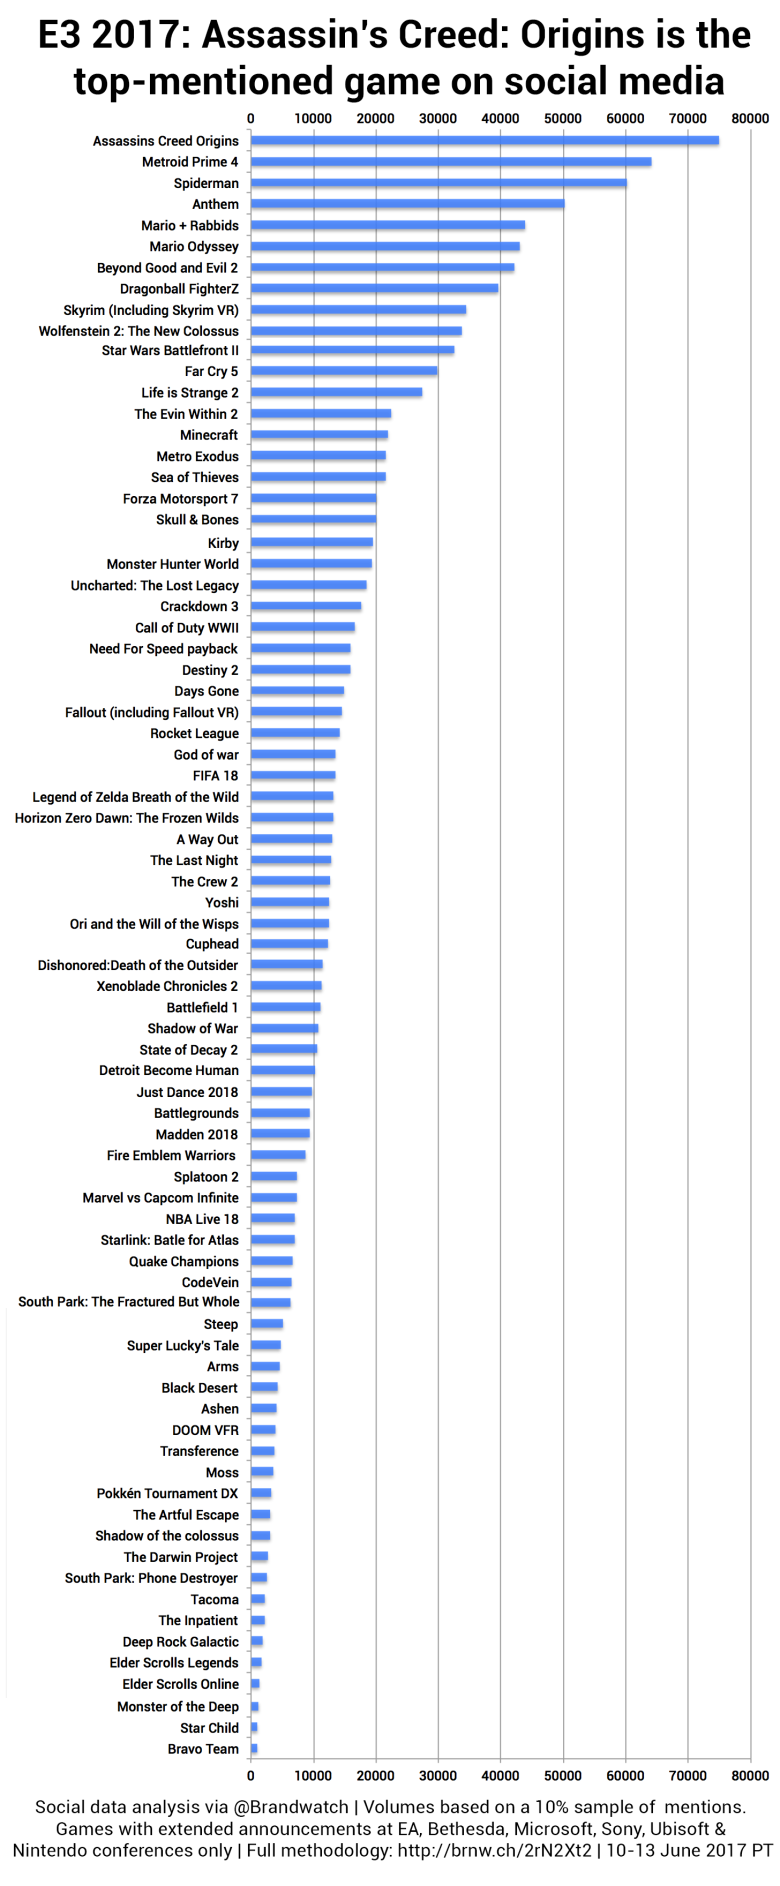 Top_mentioned_games.png